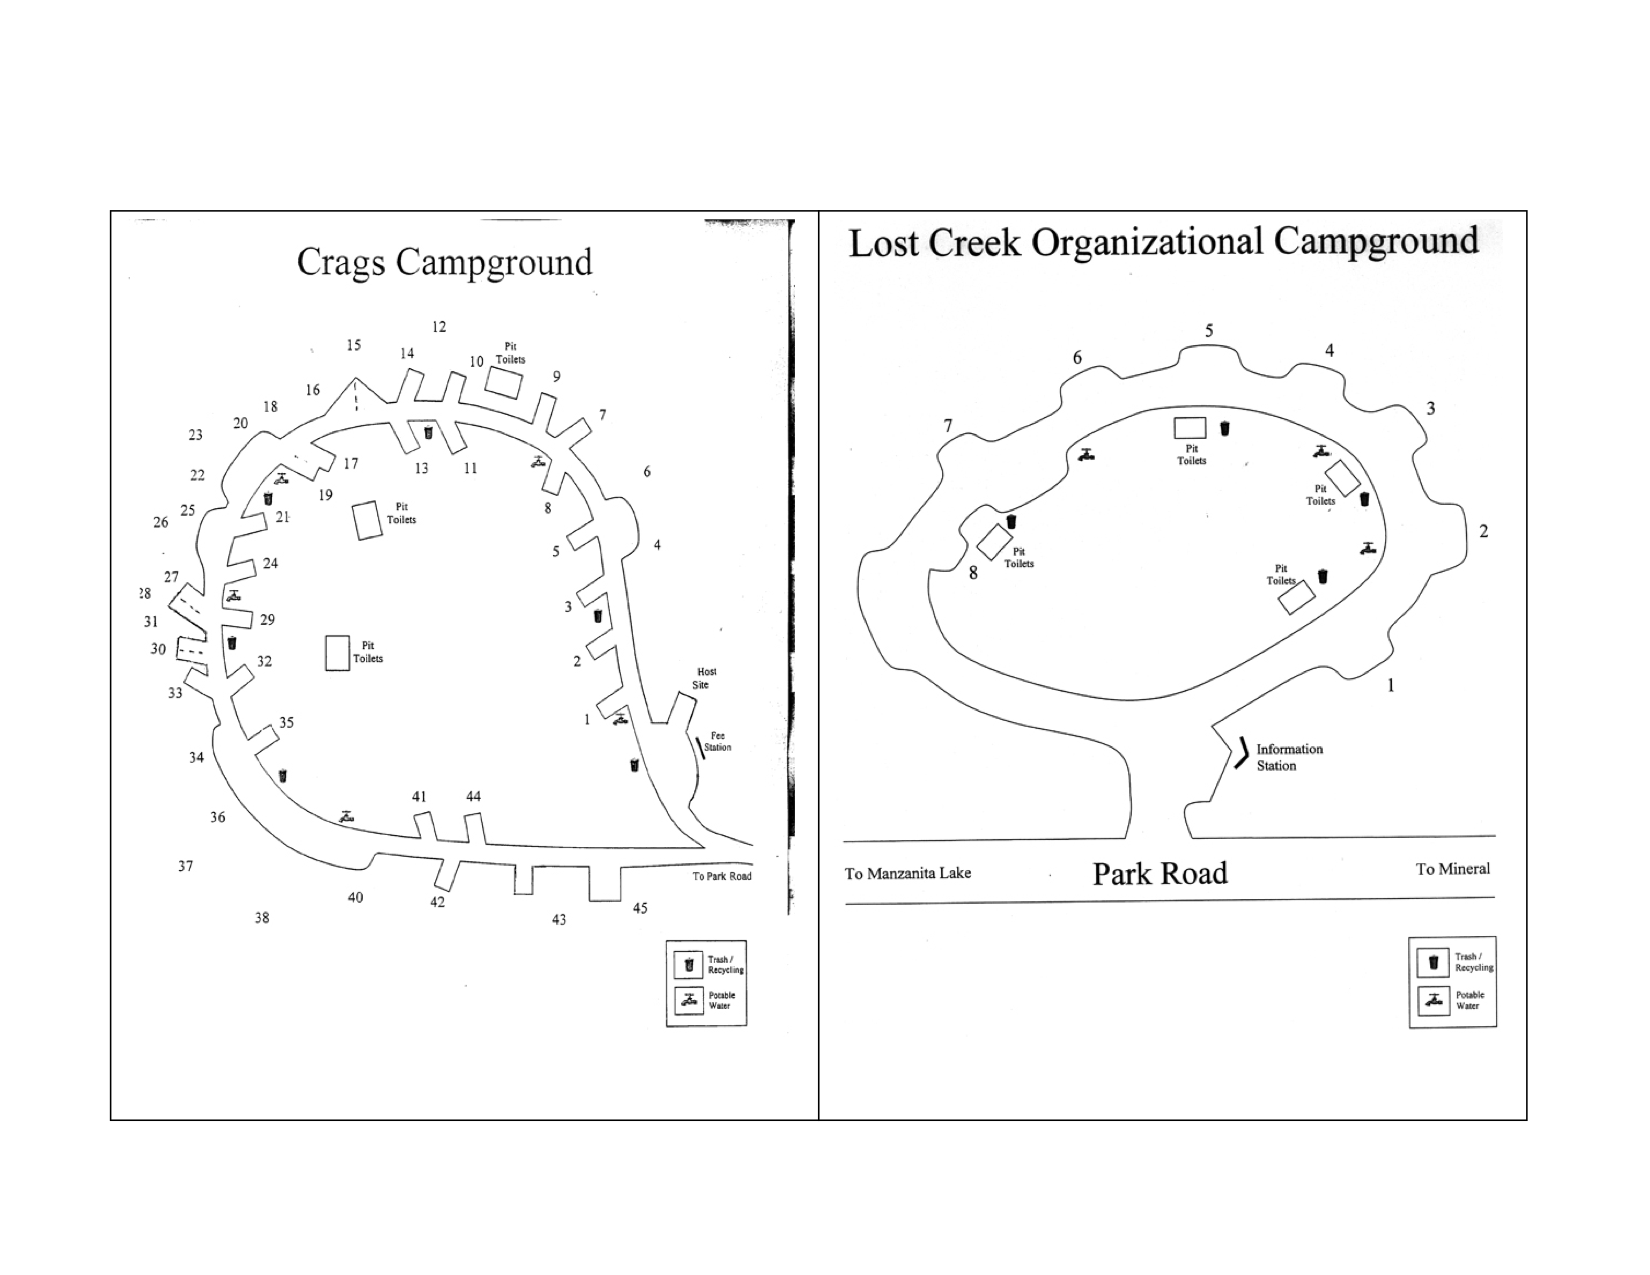 Crags & Lost Creek Campground maps